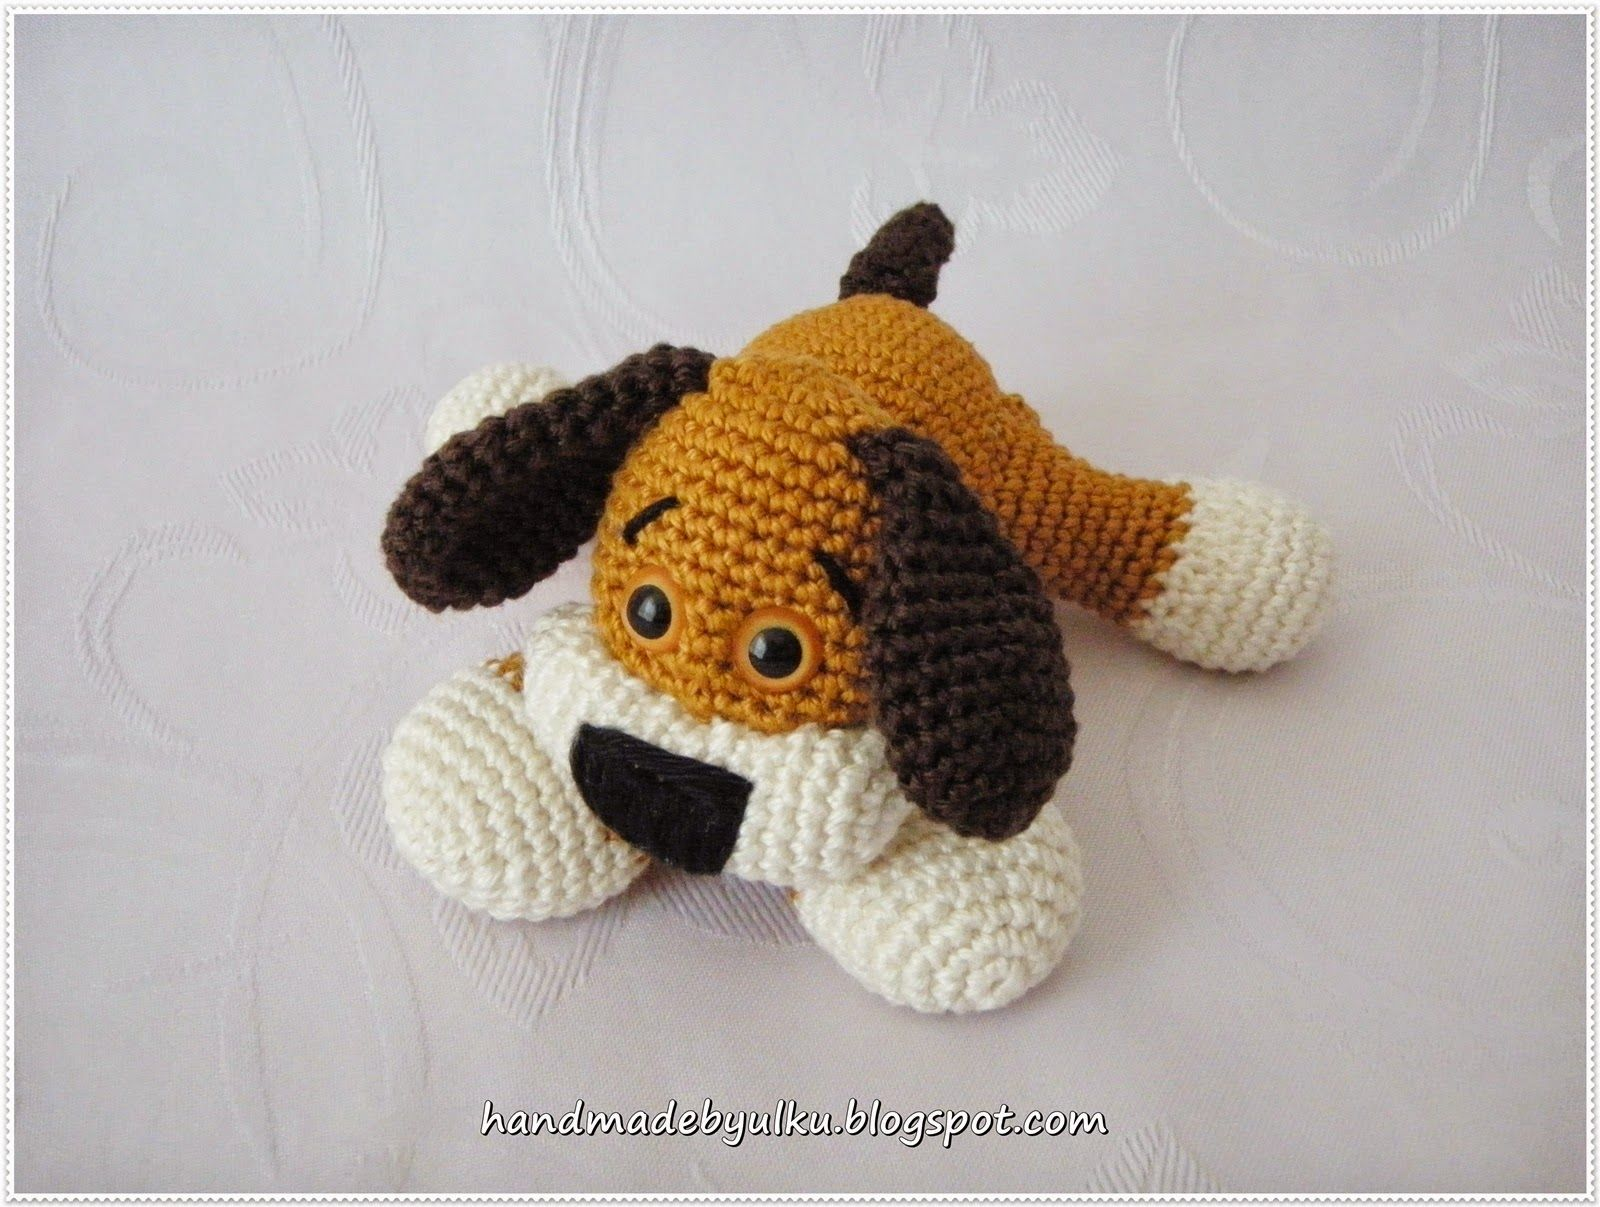 11 Amigurumi Dog Crochet Patterns – Cute Puppies - A More Crafty Life | 1207x1600